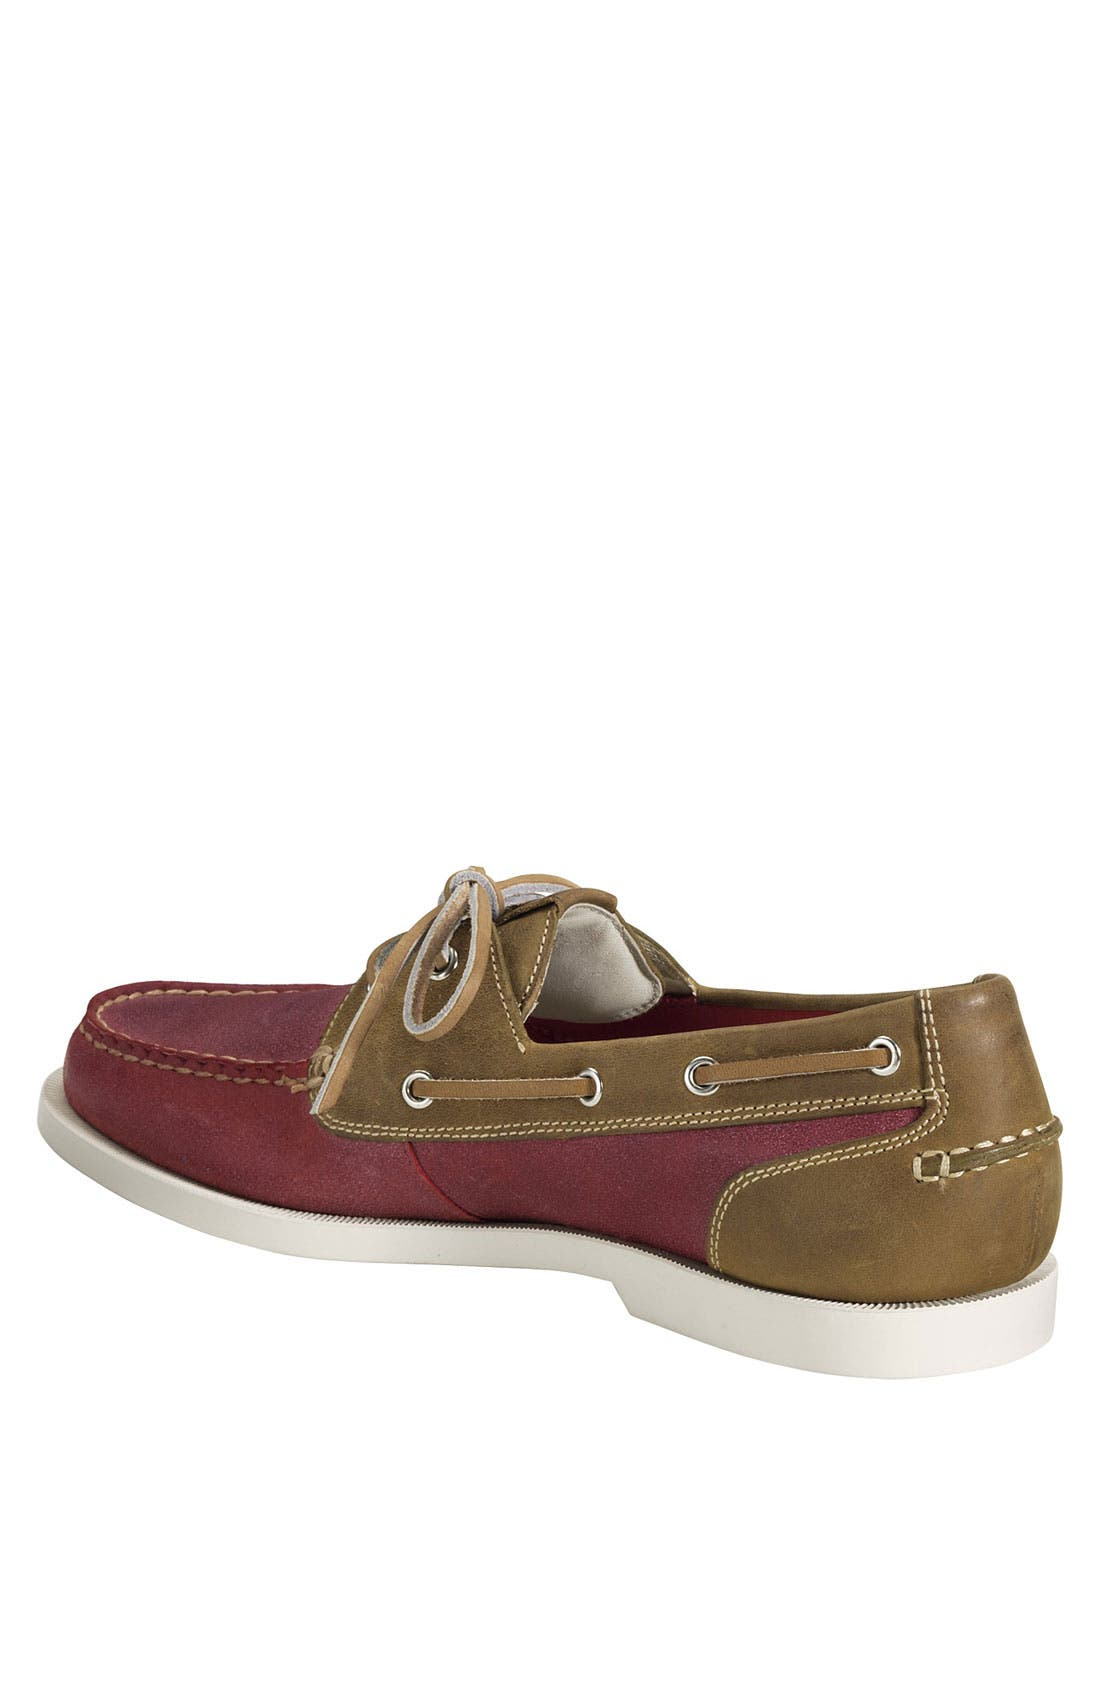 Alternate Image 2  - Cole Haan 'Air Yacht Club' Boat Shoe